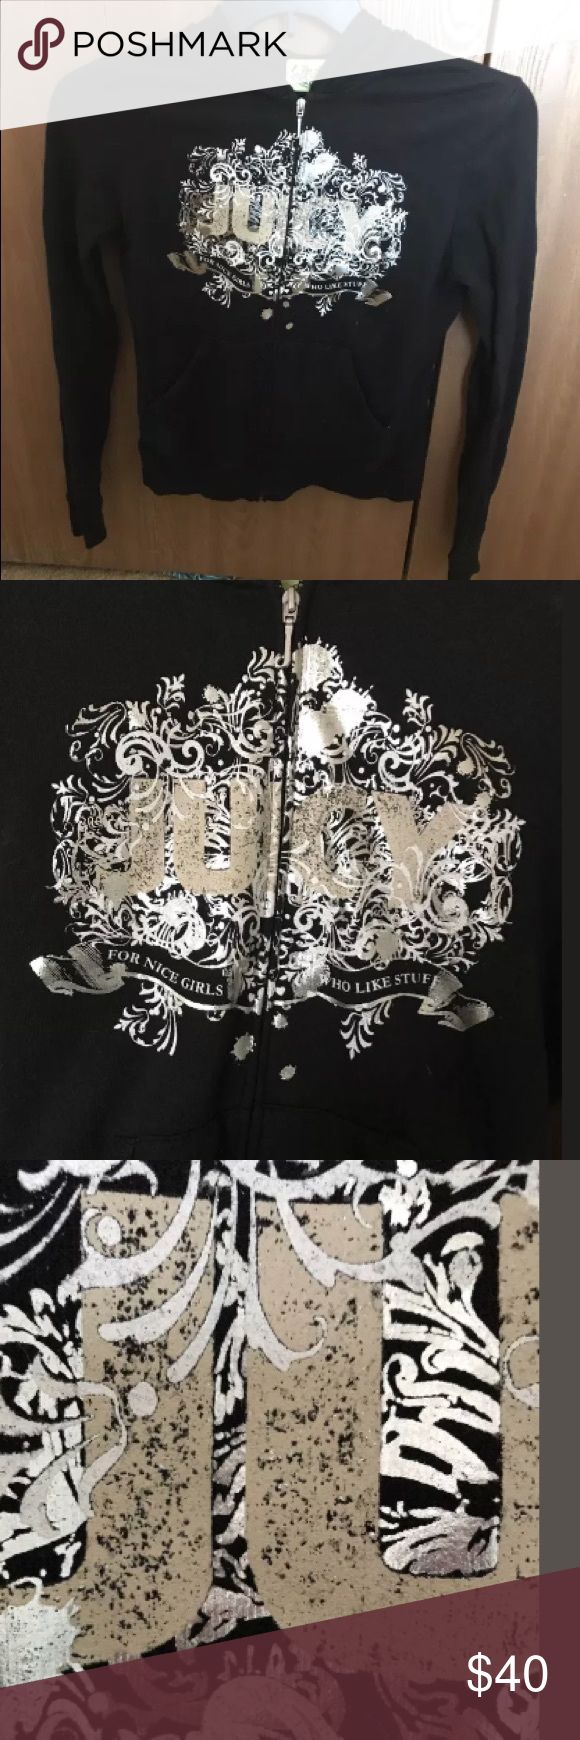 Juicy couture black and silver hoodie  large From smoke free home!! this black and metallic silver juicy hoodie is in good condition no rips stains or tears Measurements Shoulder to shoulder 18 armpit armpit 18 shoulder to bottom hem 23 Juicy Couture Tops Sweatshirts & Hoodies